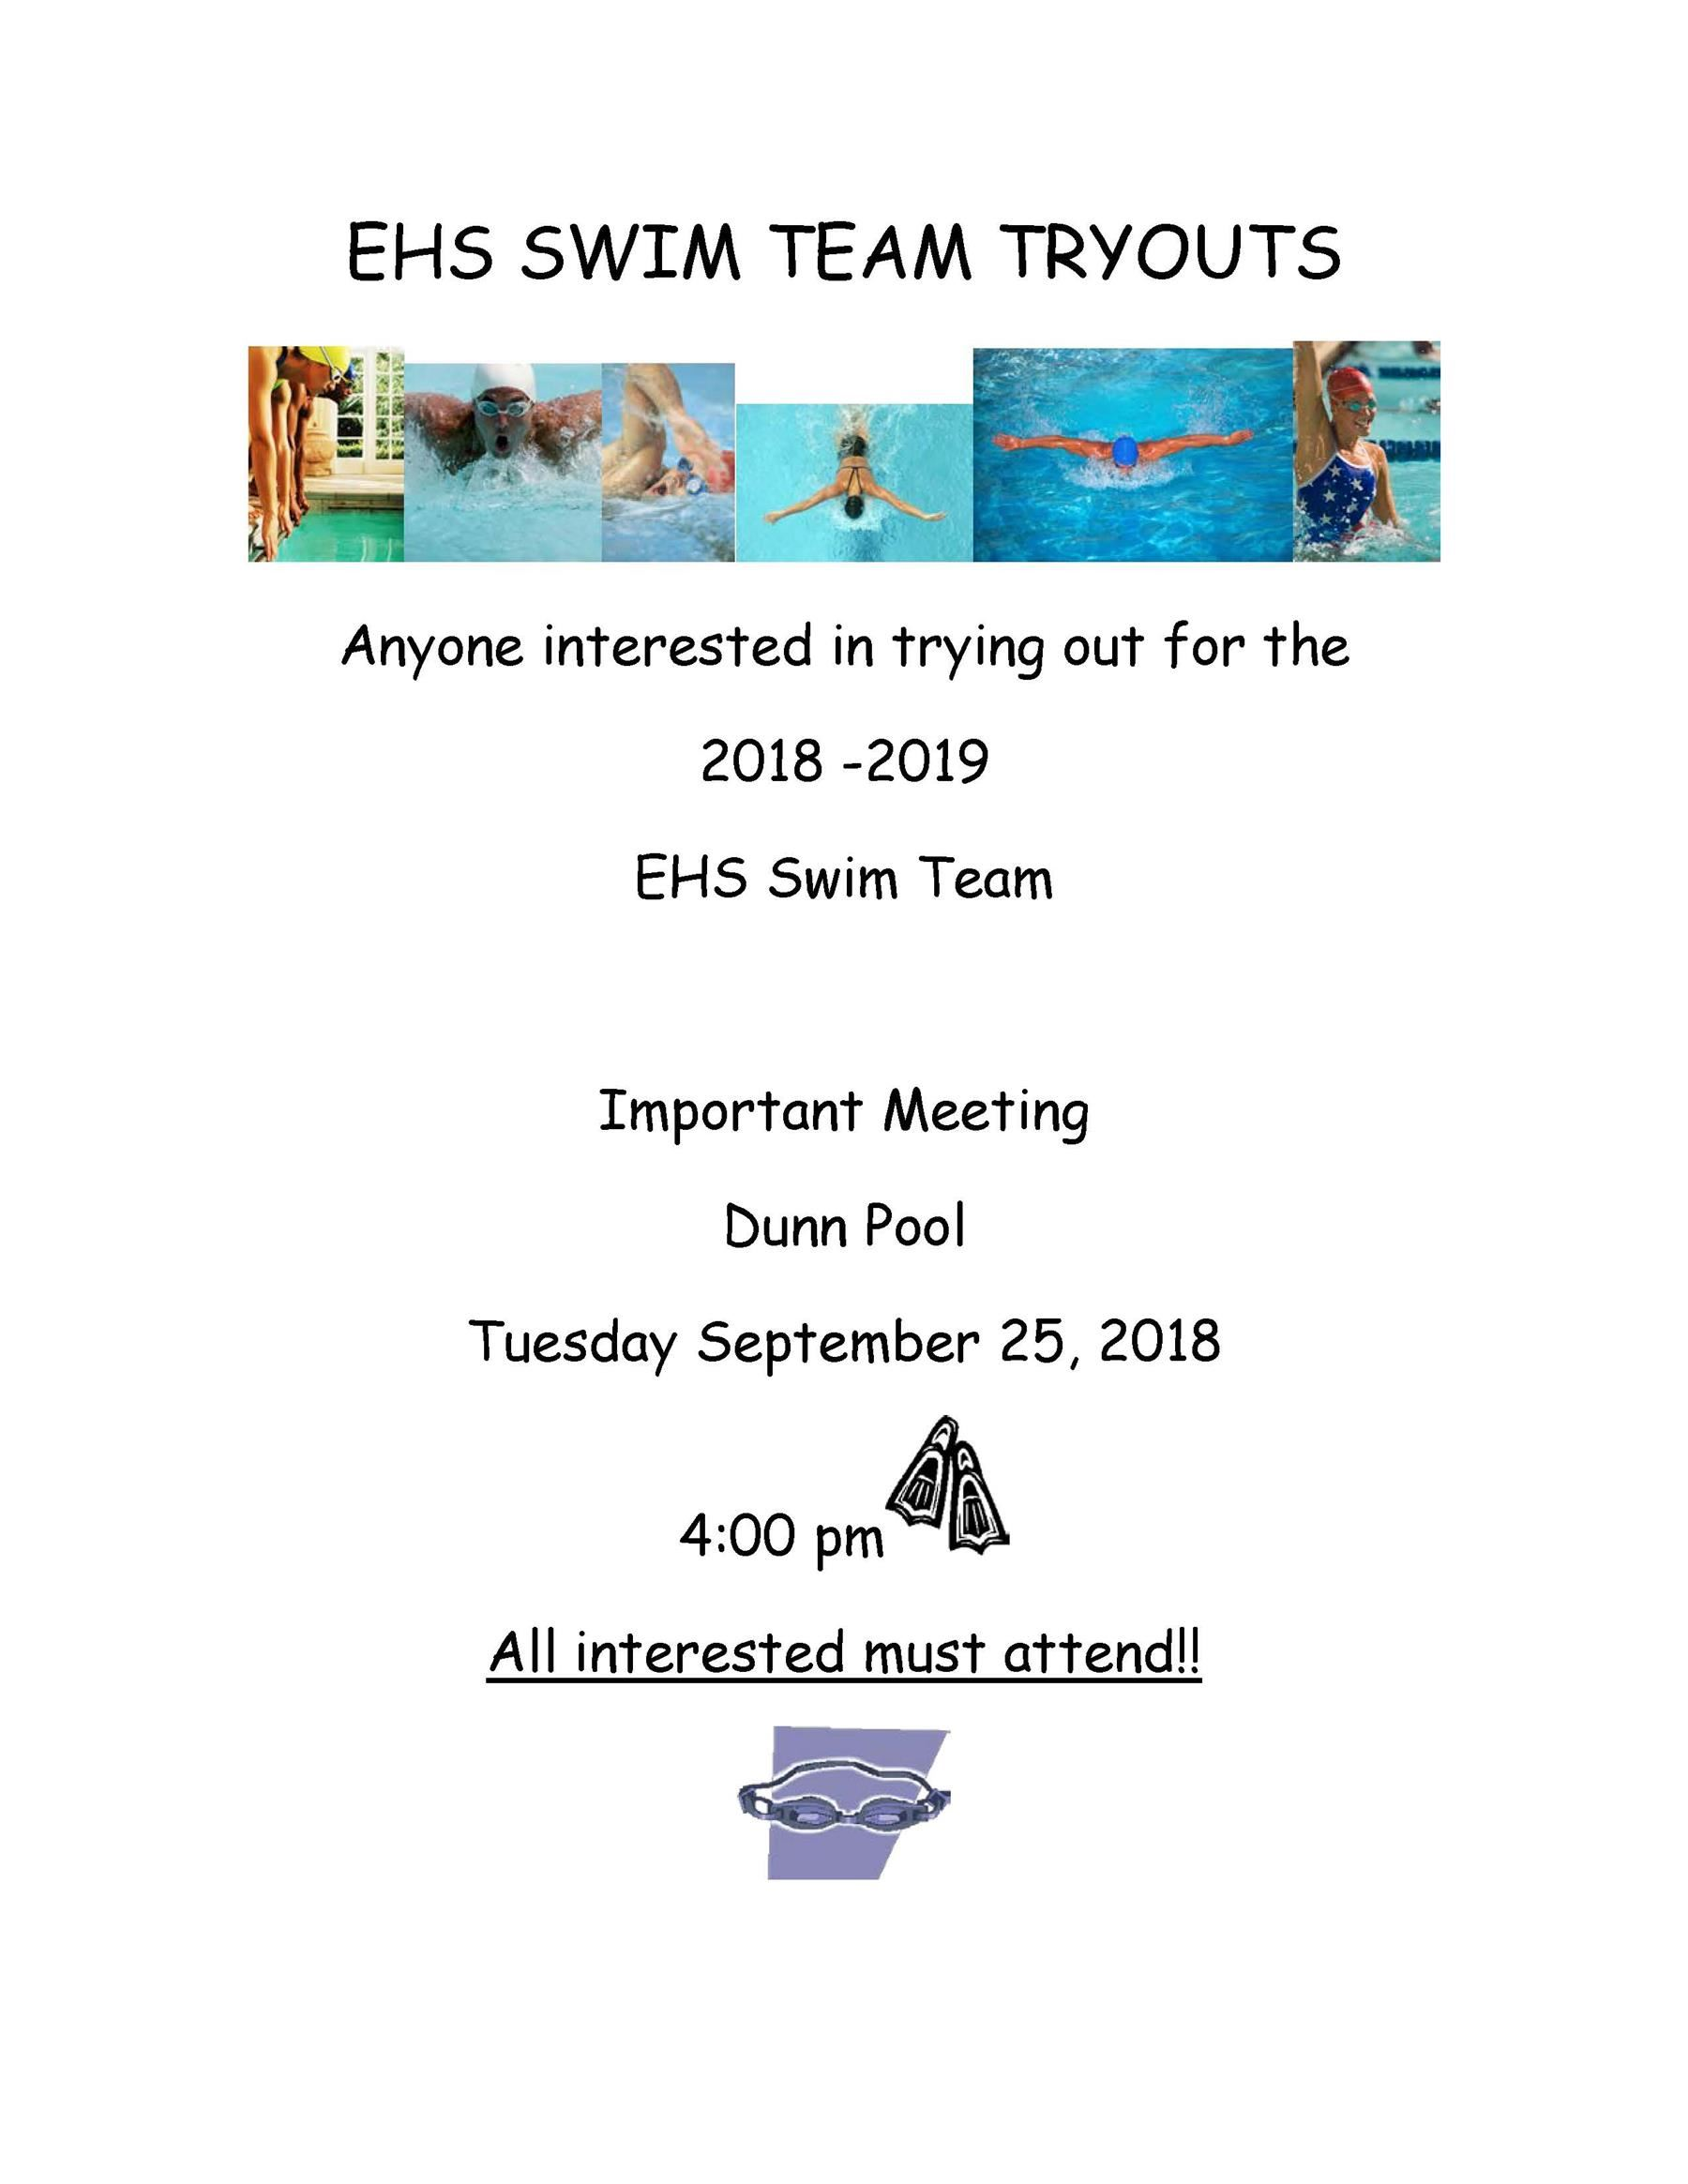 2018-19 Winter Season - SWIM TEAM TRYOUTS